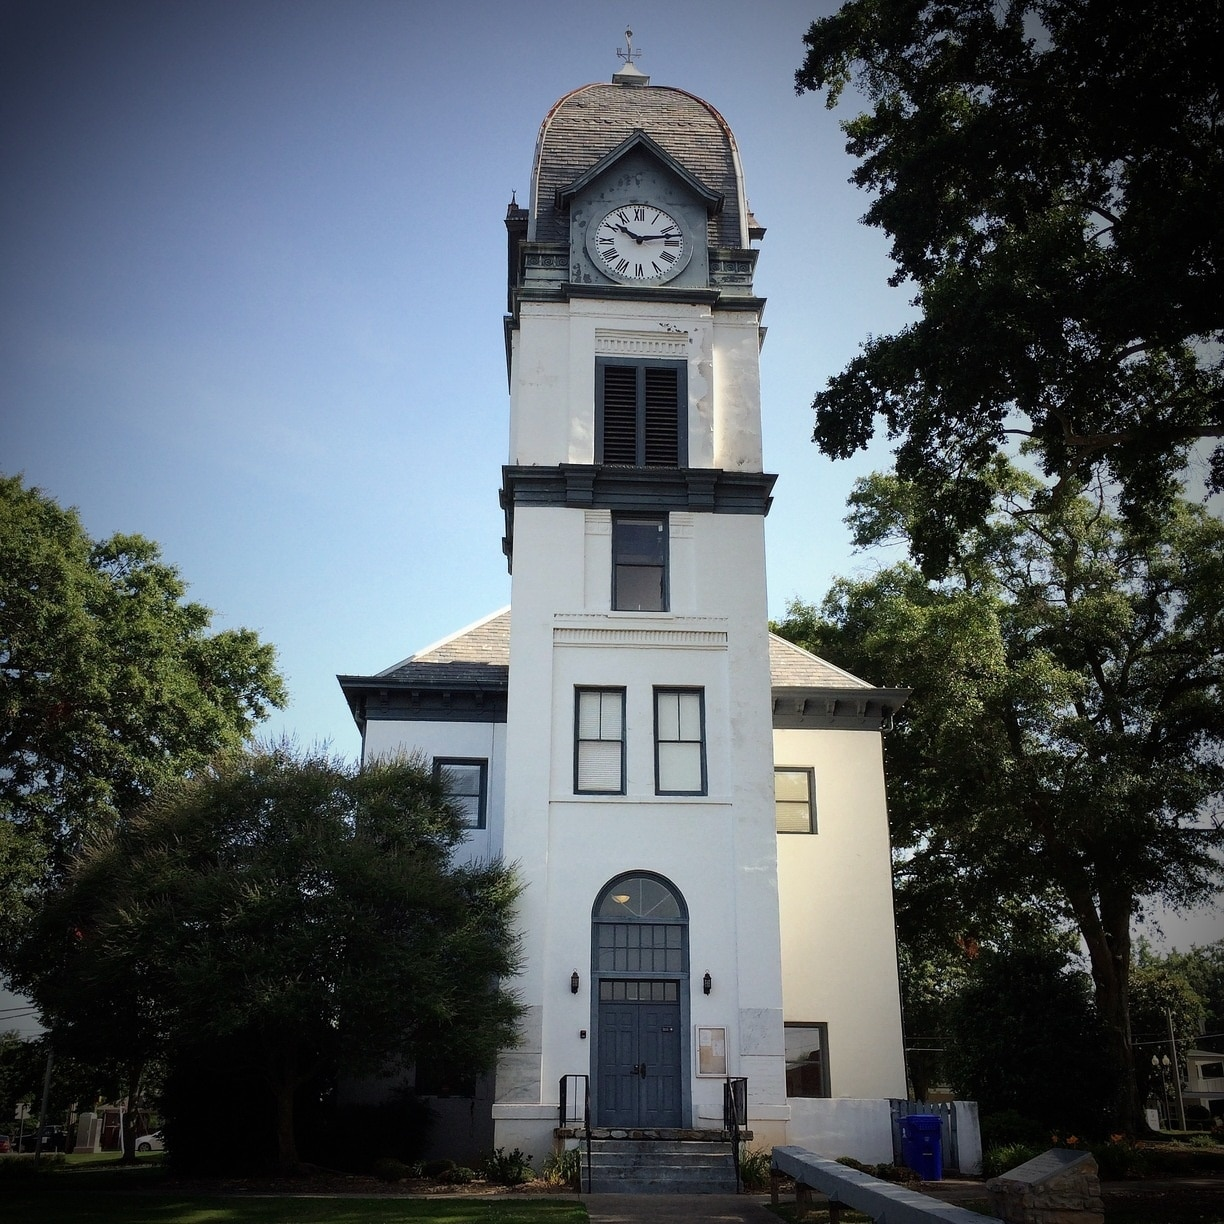 Old Fayette County Courthouse, Fayetteville, Georgia, United States of America